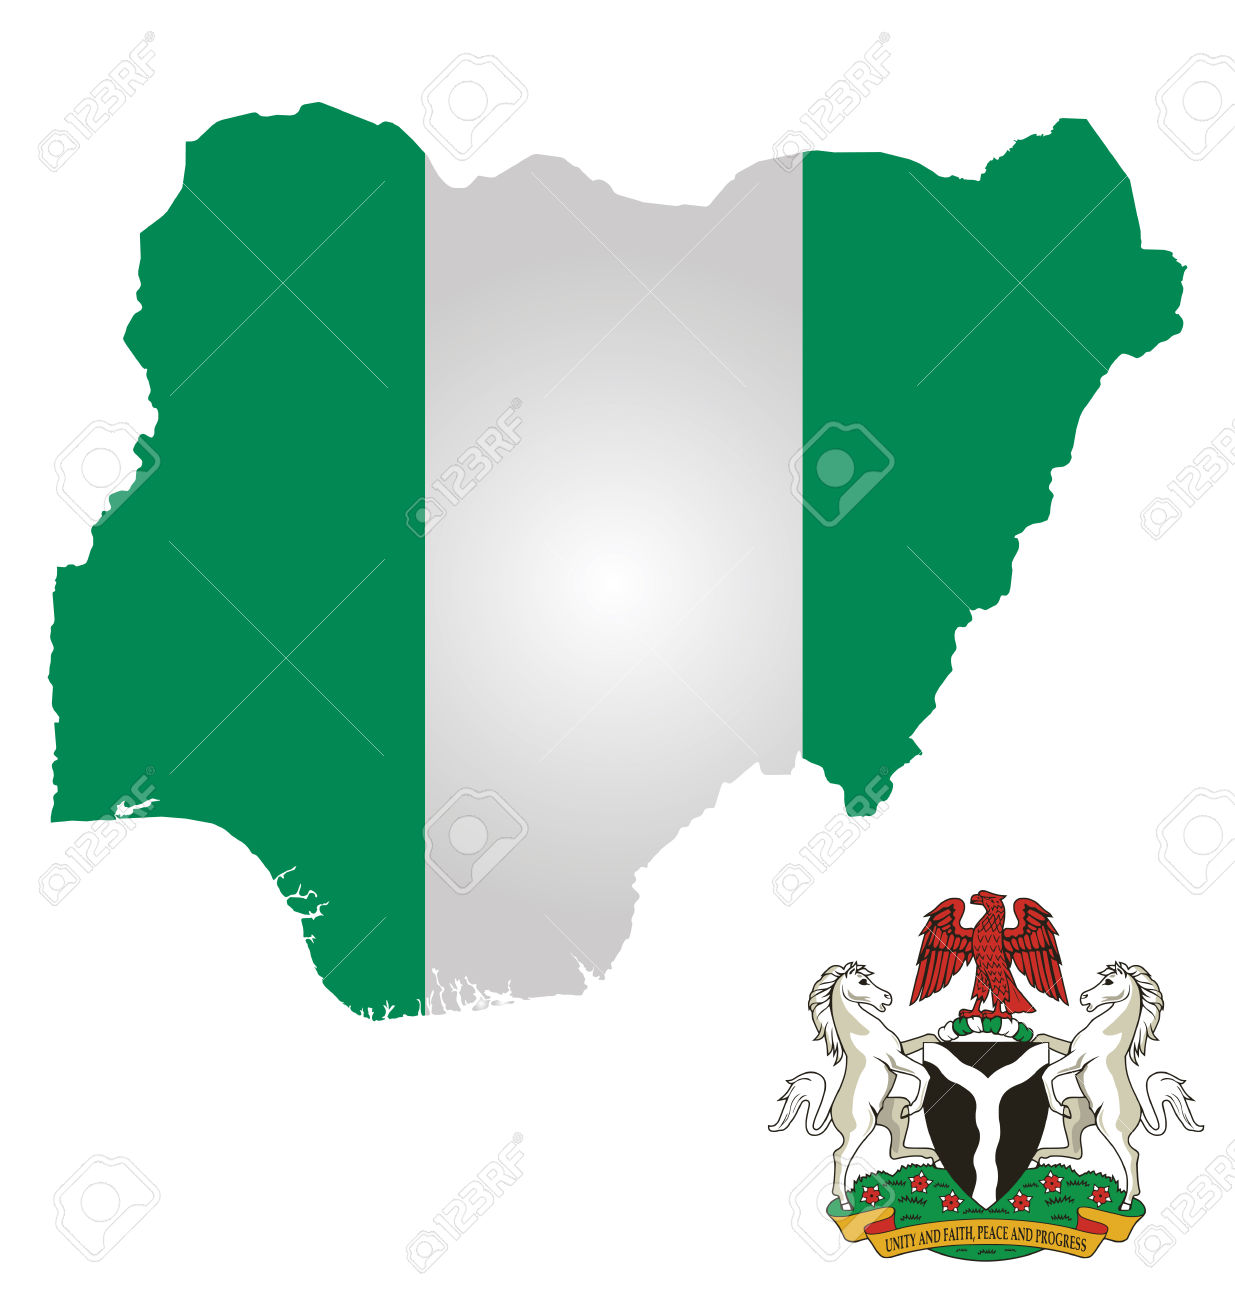 Flag And Coat Of Arms Of The Federal Republic Of Nigeria Overlaid.